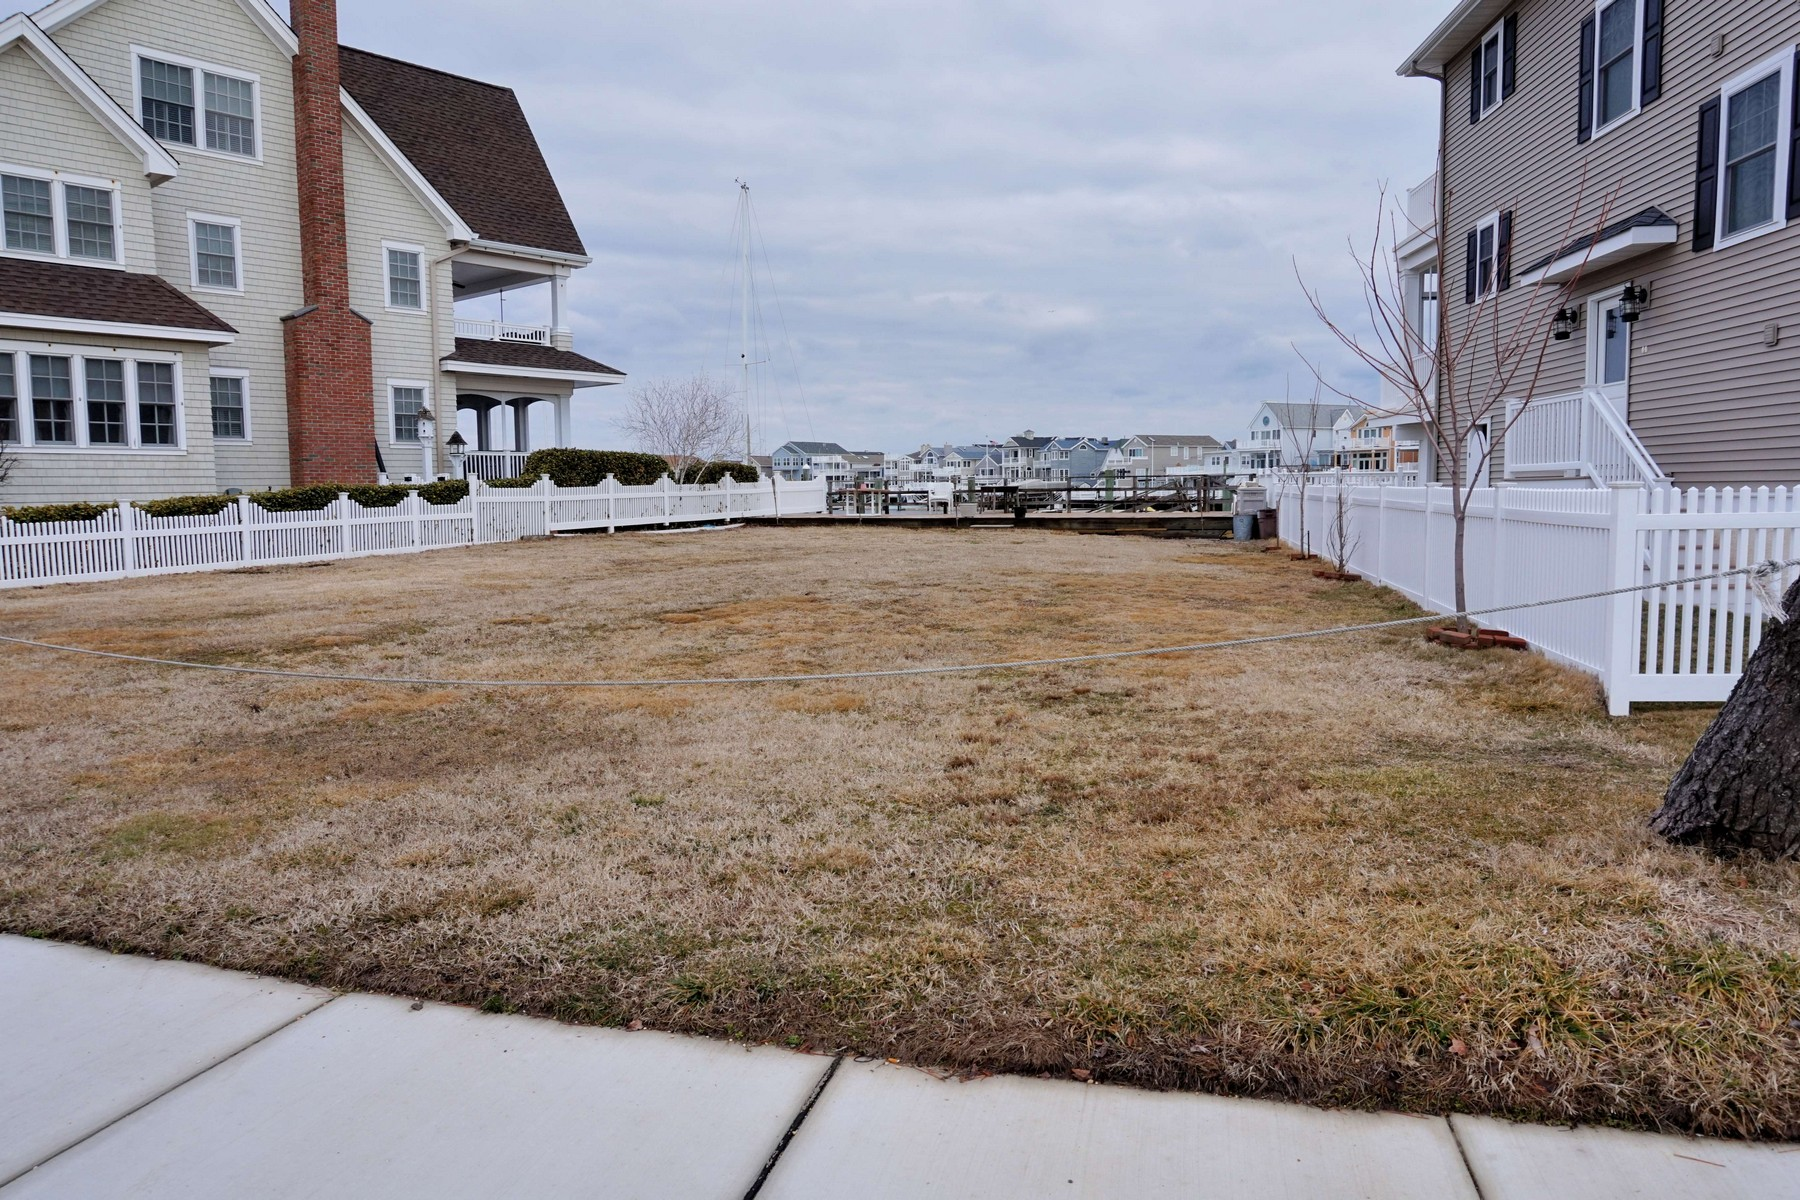 Terreno por un Venta en Large Bay Front Lot 1 W 18th Steet Ocean City, Nueva Jersey, 08226 Estados Unidos